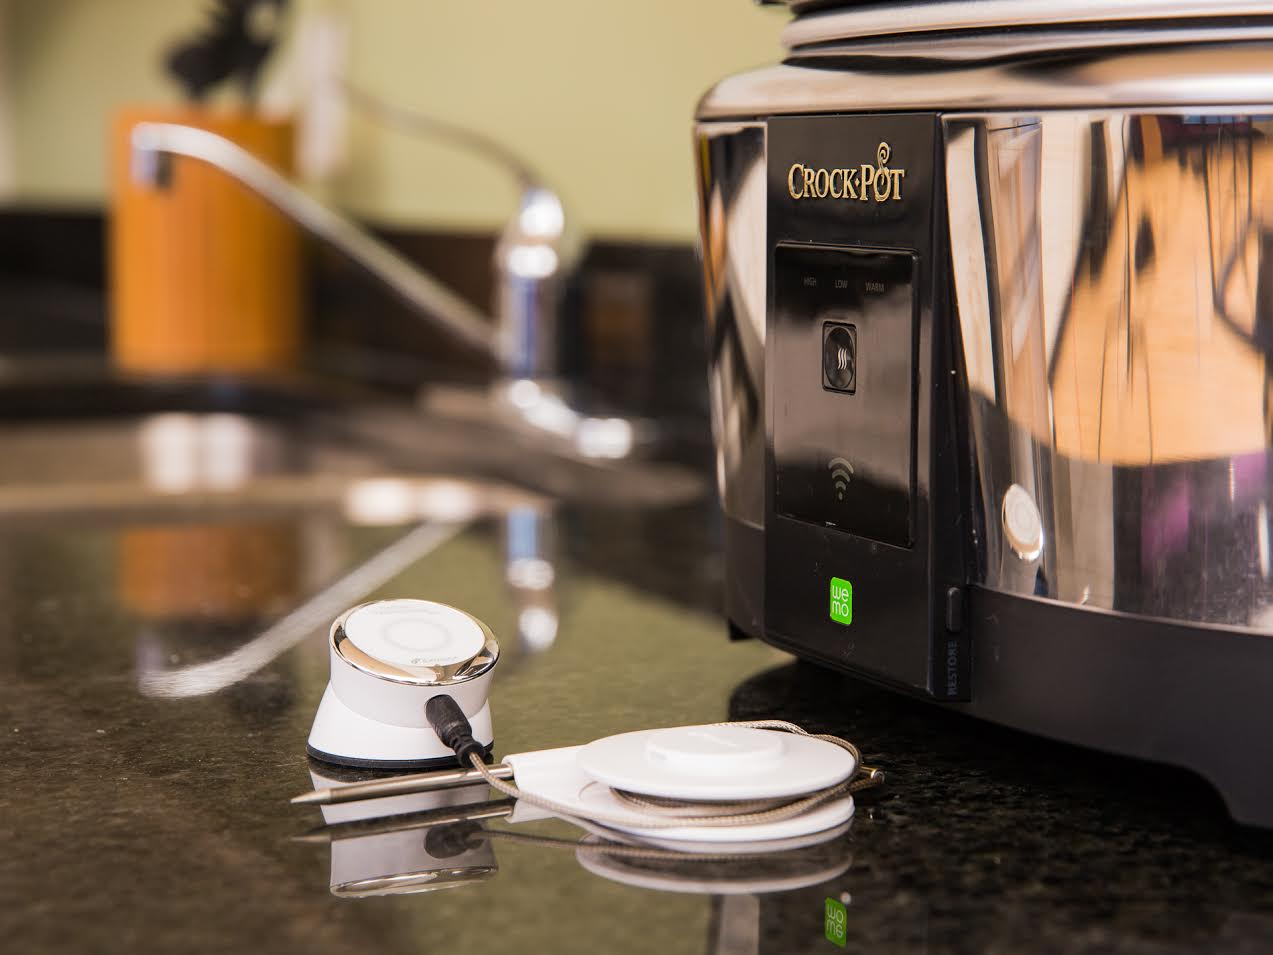 iDevices Kitchen Thermometer and the Crock-Pot WeMo Slow Cooker